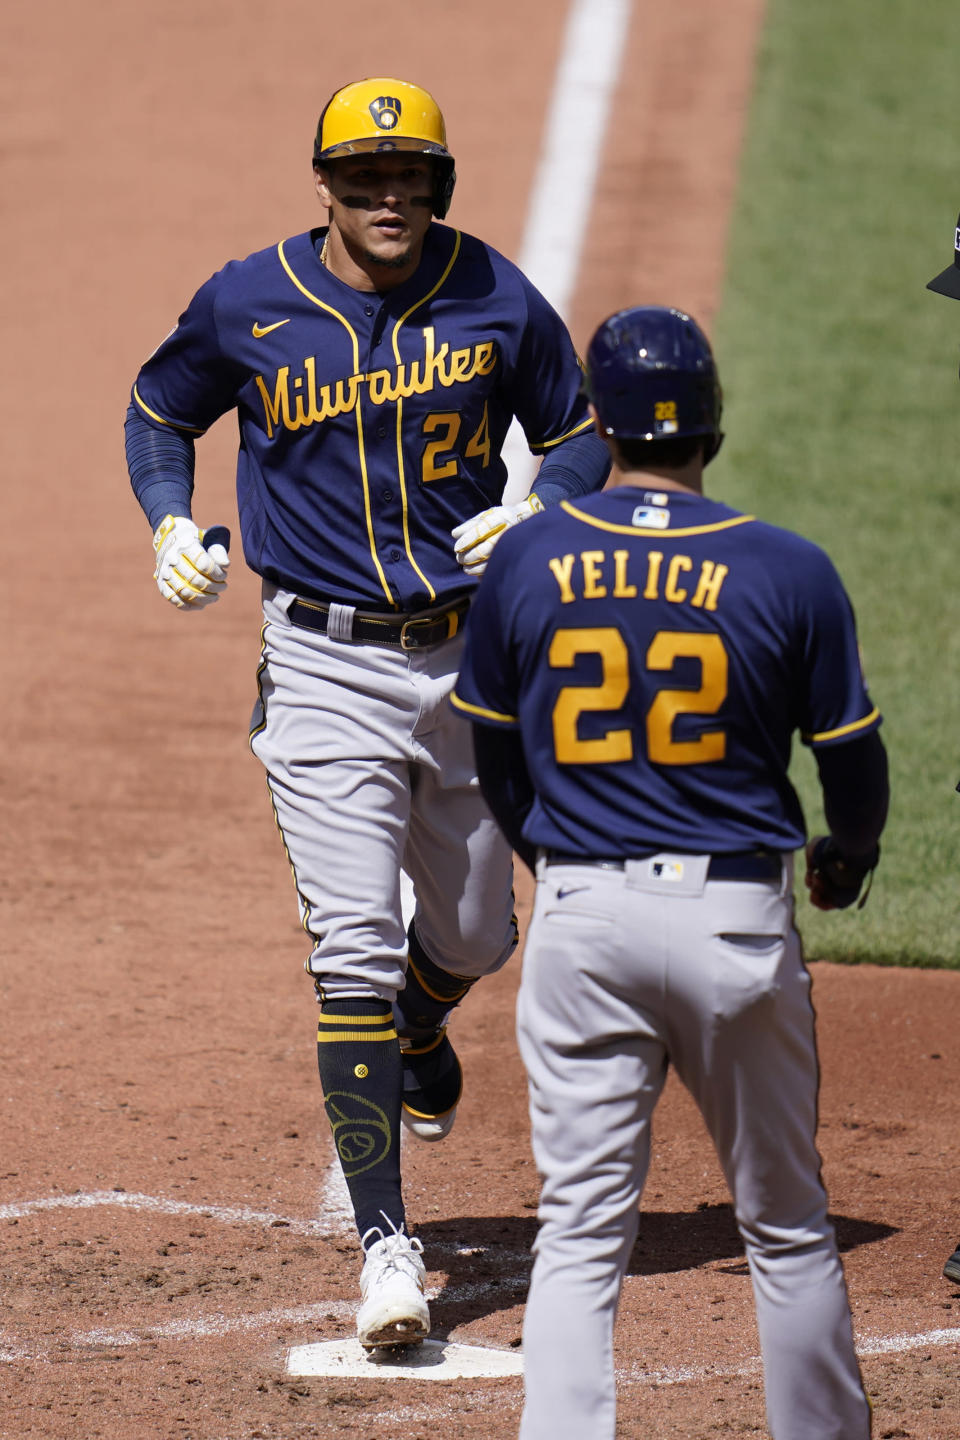 Milwaukee Brewers' Avisail Garcia (24) is congratulated by teammate Christian Yelich (22) after hitting a two-run home run during the fifth inning of a baseball game against the St. Louis Cardinals Saturday, April 10, 2021, in St. Louis. (AP Photo/Jeff Roberson)